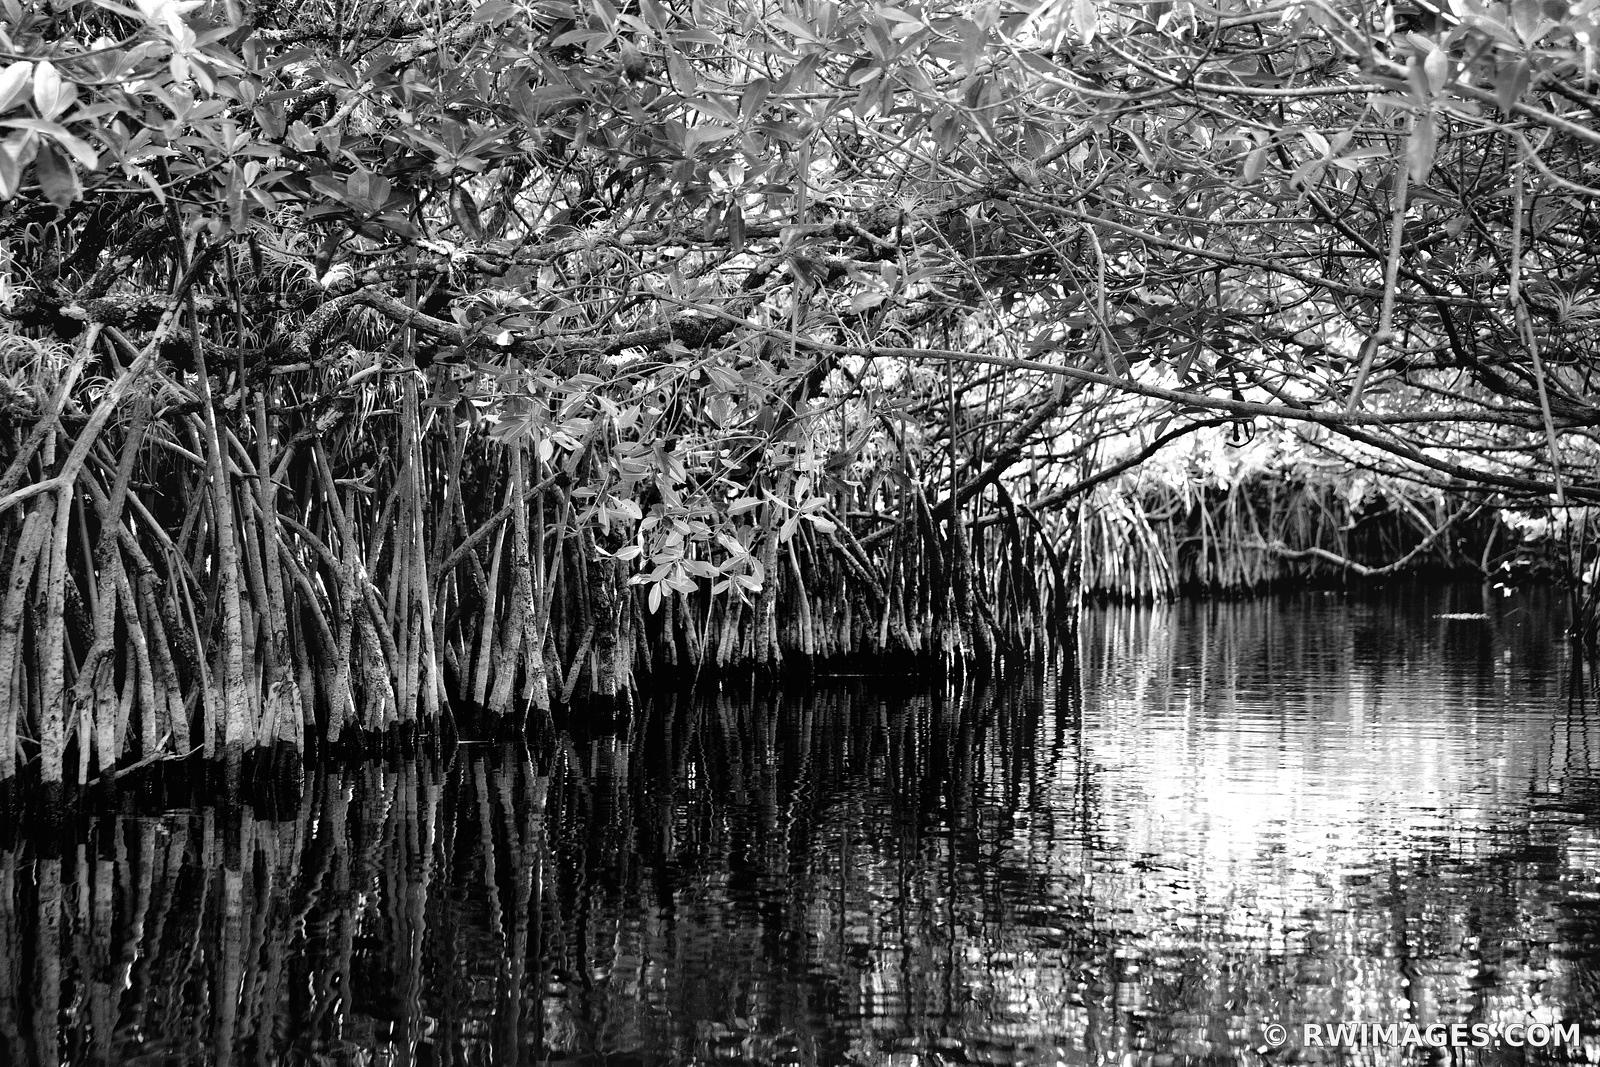 MANGROVE TUNNEL BROMELIADS TURNER RIVER CANOE TRAIL BIG CYPRESS NATIONAL PRESERVE EVERGLADES FLORIDA BLACK AND WHITE